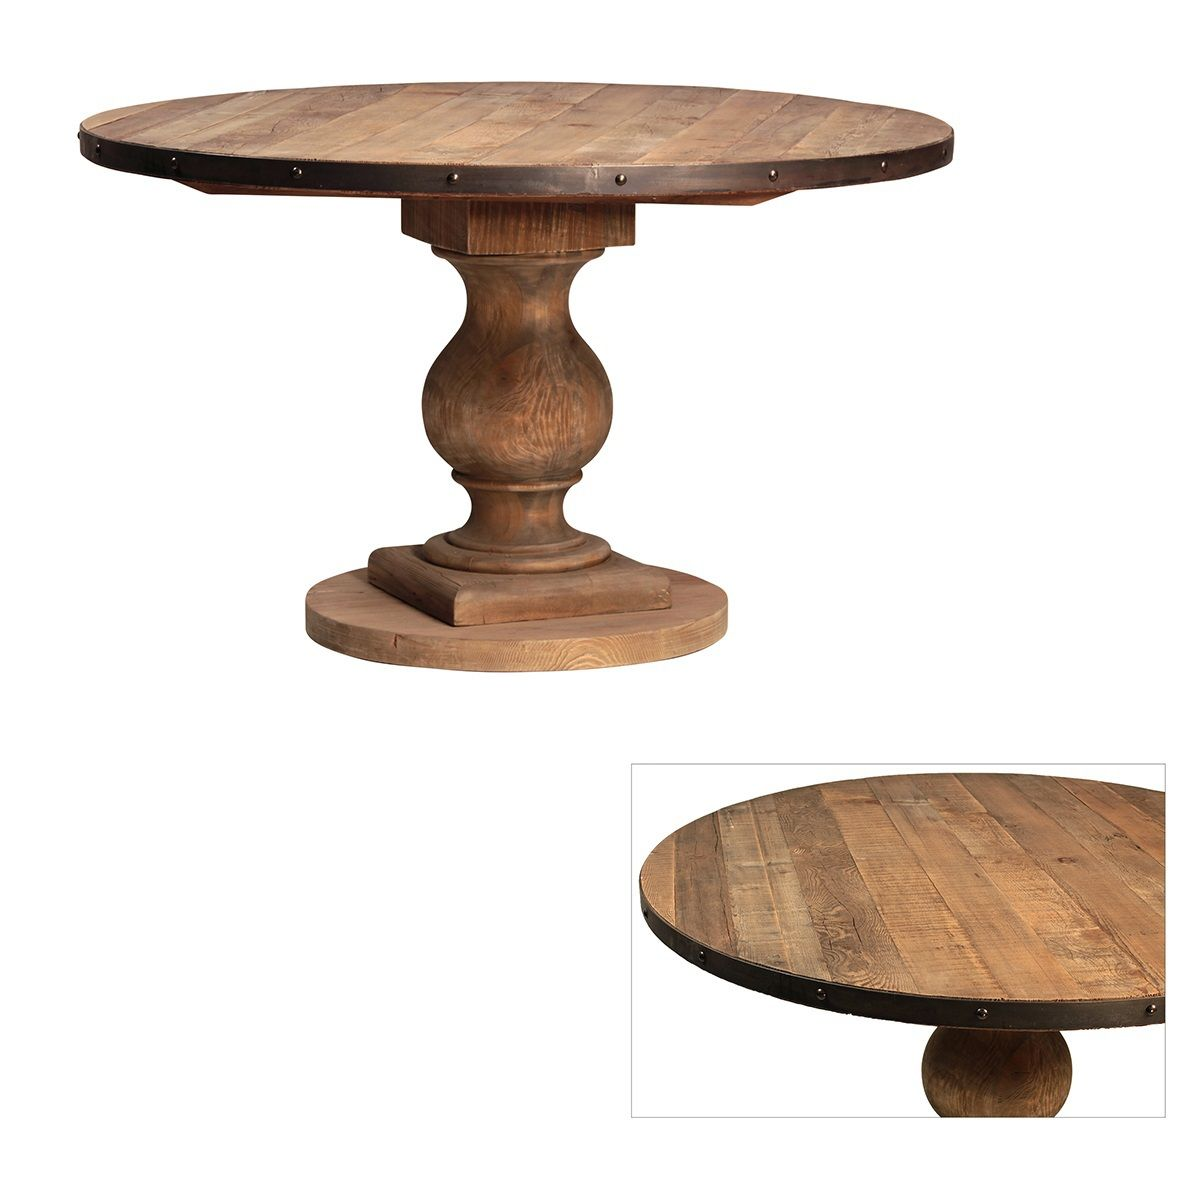 Farmhouse Round Pedestal Table Pinterest Round Farmhouse - 50 inch round pedestal table